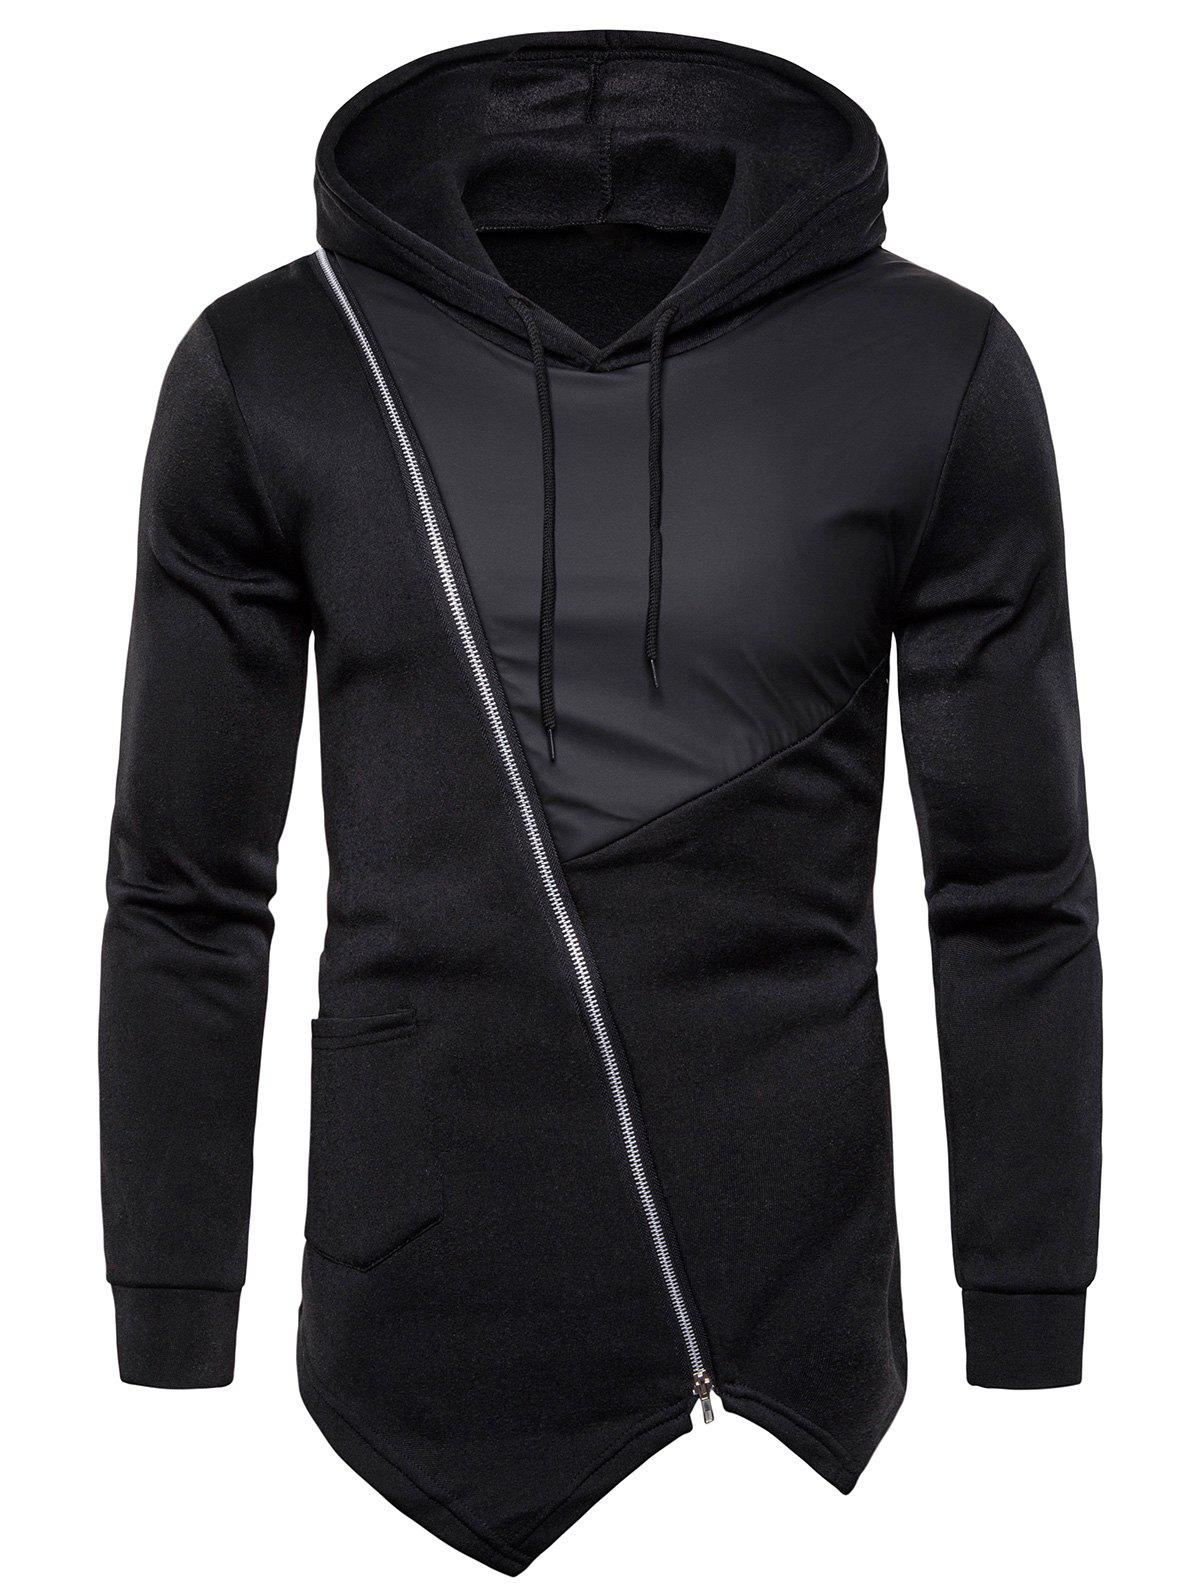 Zipper Decoration Drawstring Hoodie - BLACK XL